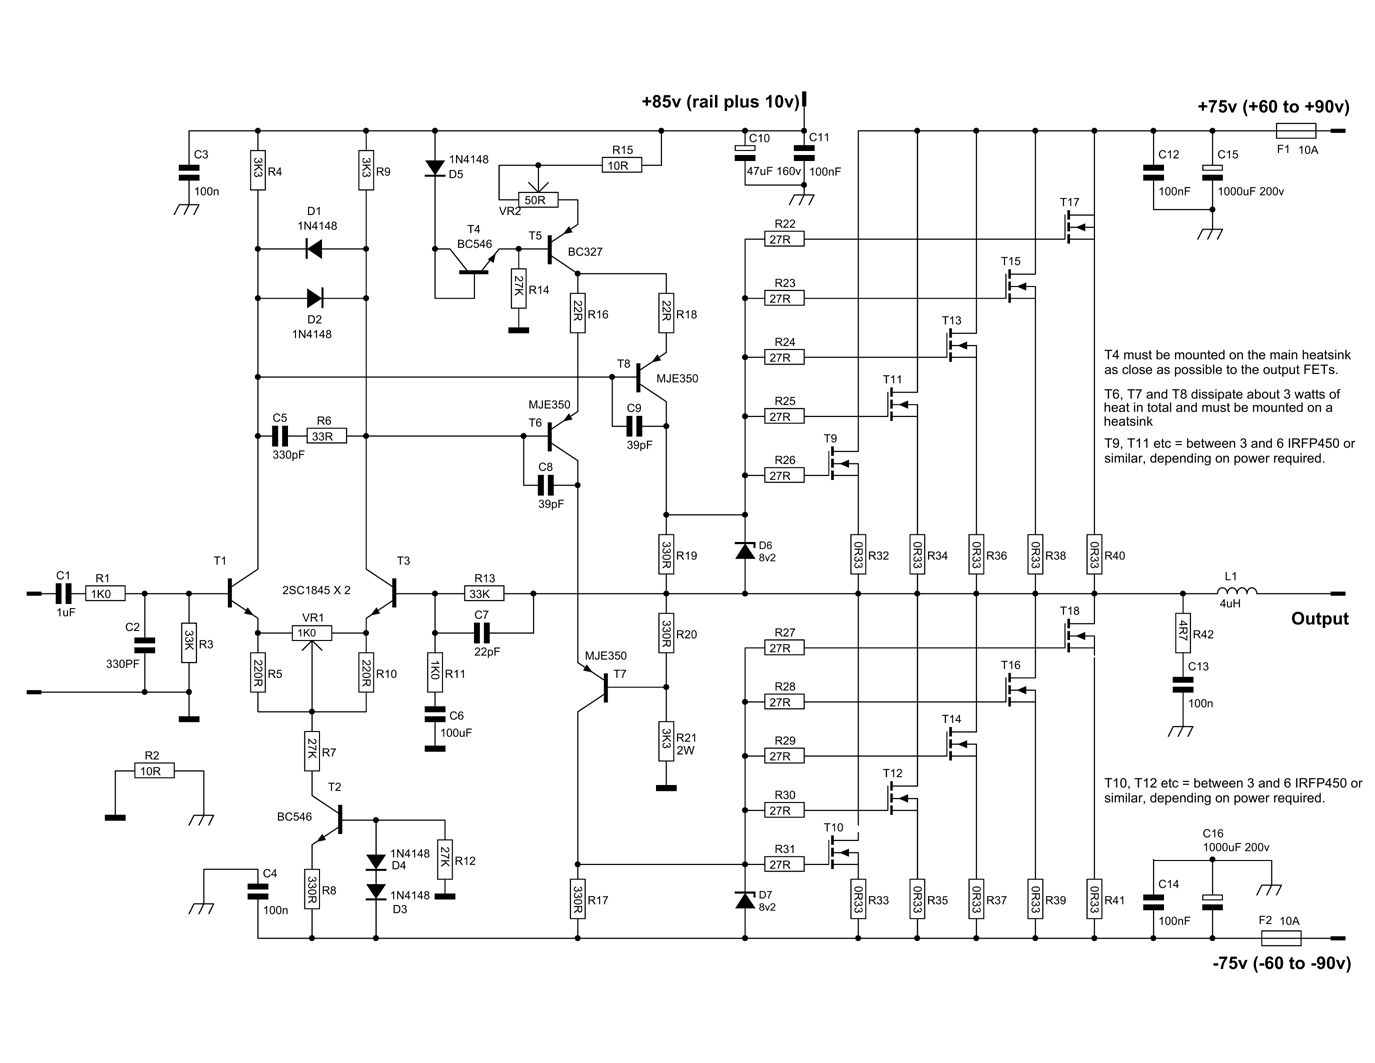 Amplifier diagrams wiring diagram house this is the circuit diagram of 600w mosfet power amplifier the e607fc041070dc53db75847ae2b21b34 151081762483235175 ccuart Choice Image